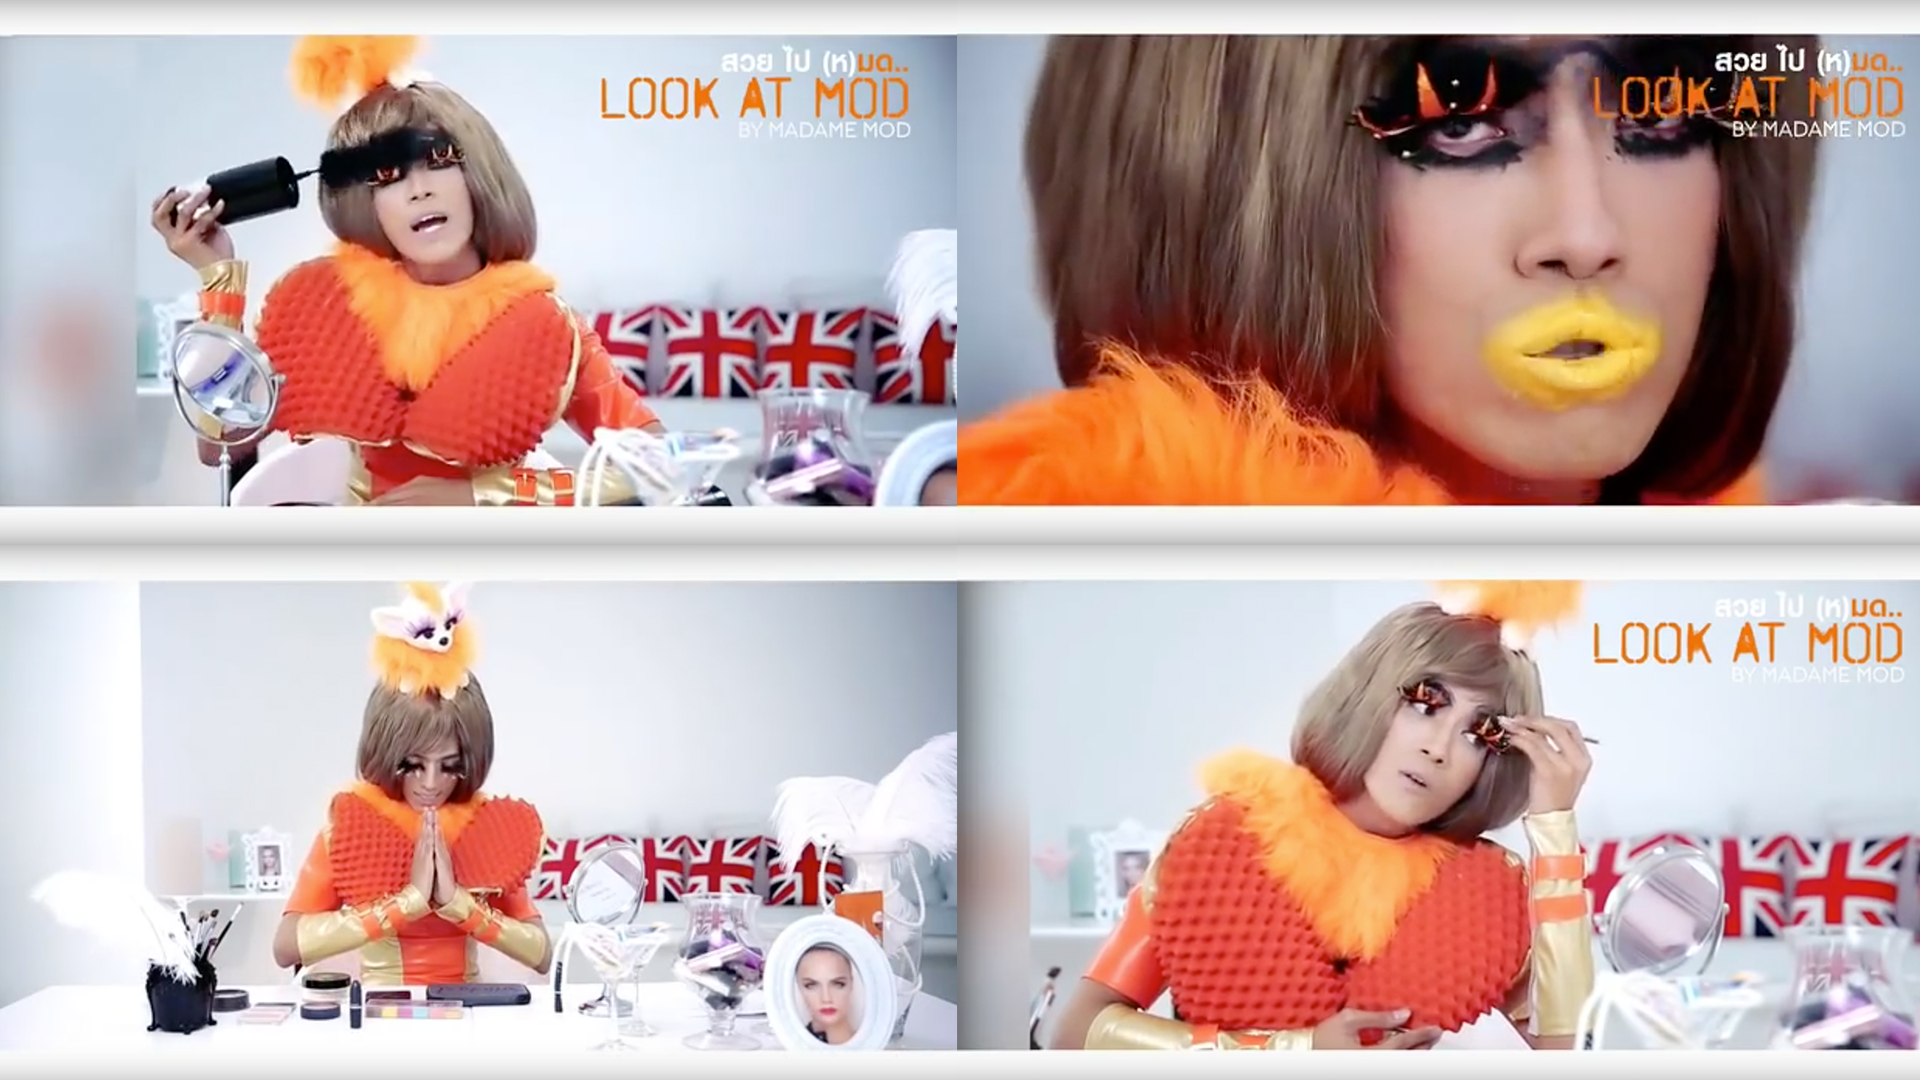 Look at Mod by MADAME MOD